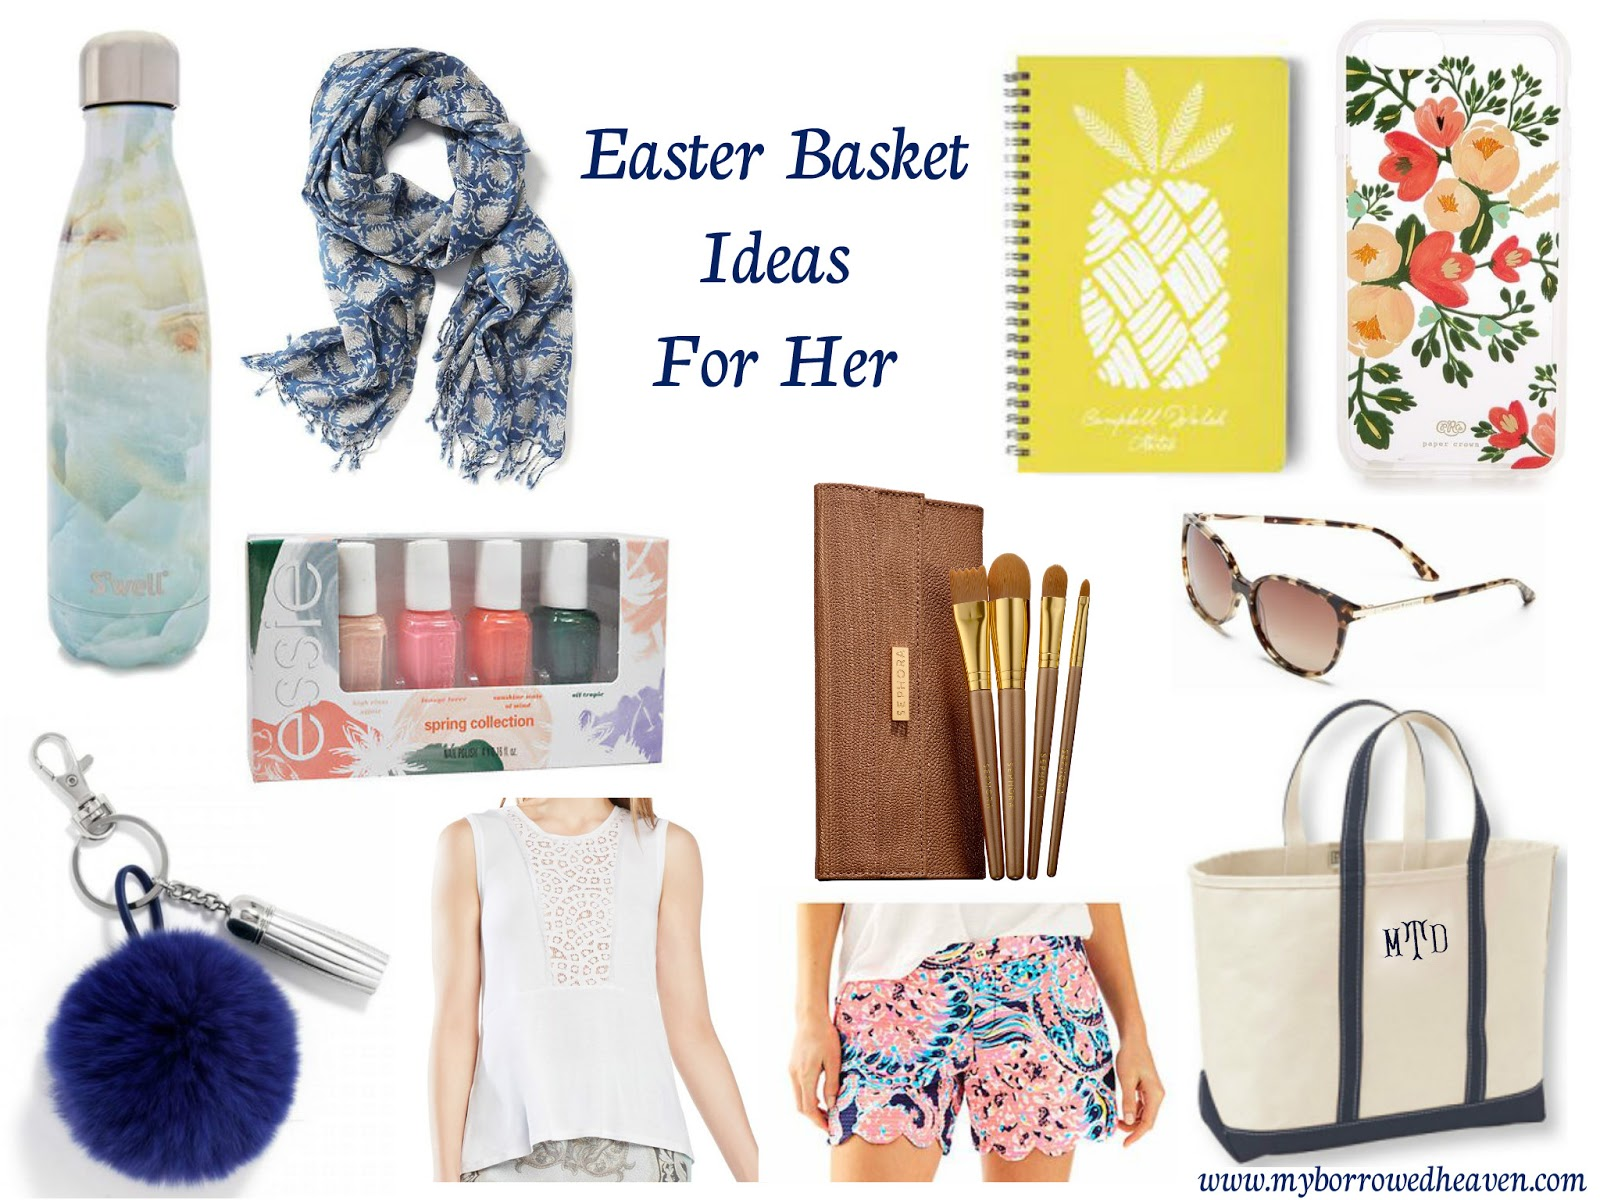 Borrowed heaven easter basket ideas for her how pretty is the pattern on this opal marble bottle i absolutely love my swell bottle and it really does keep drinks as hot or cold as long as it negle Choice Image